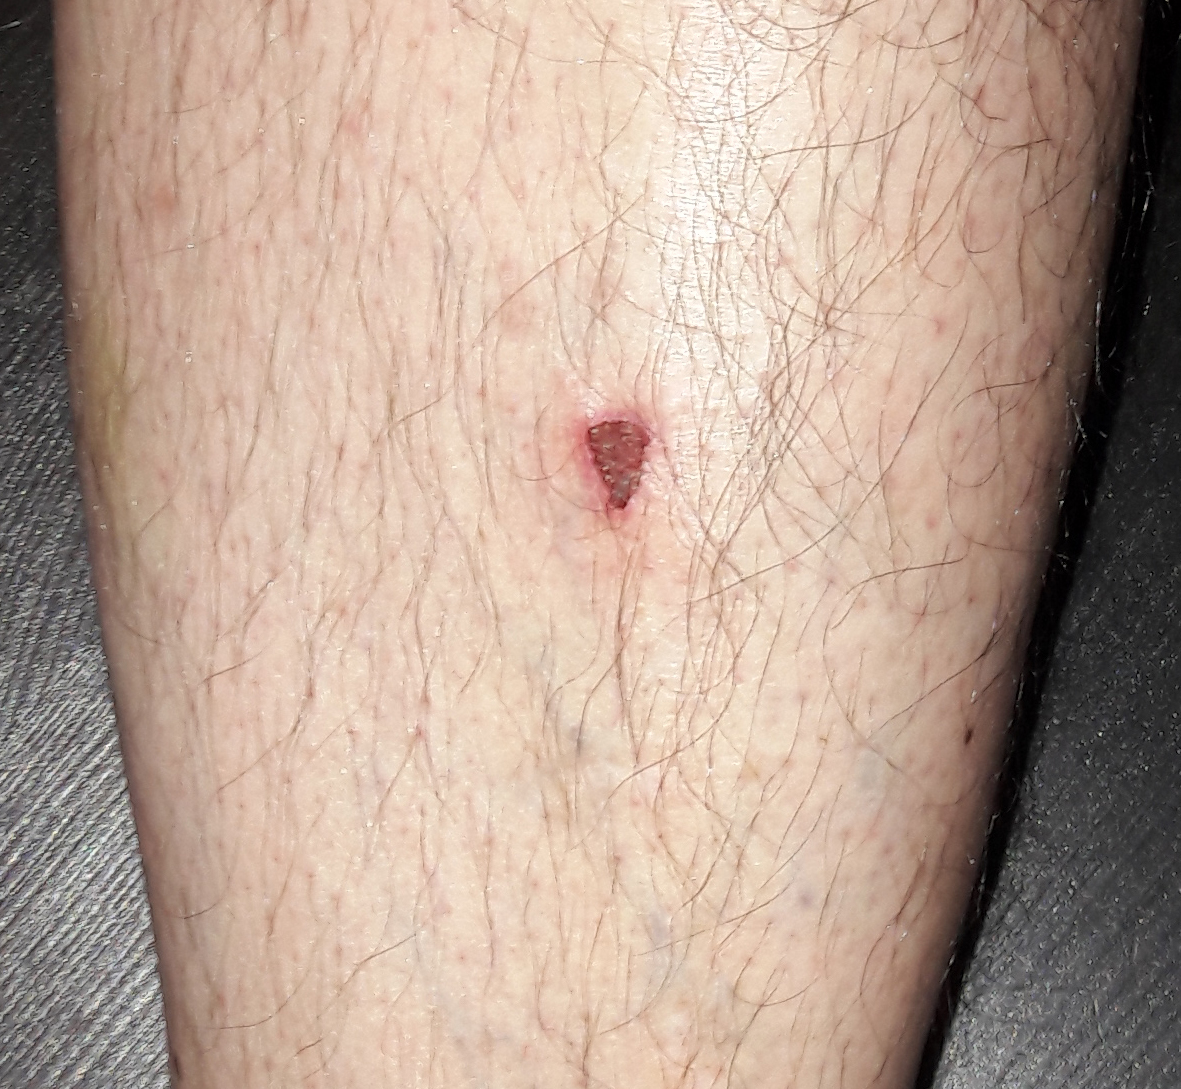 Triangular-leg-scar.jpg